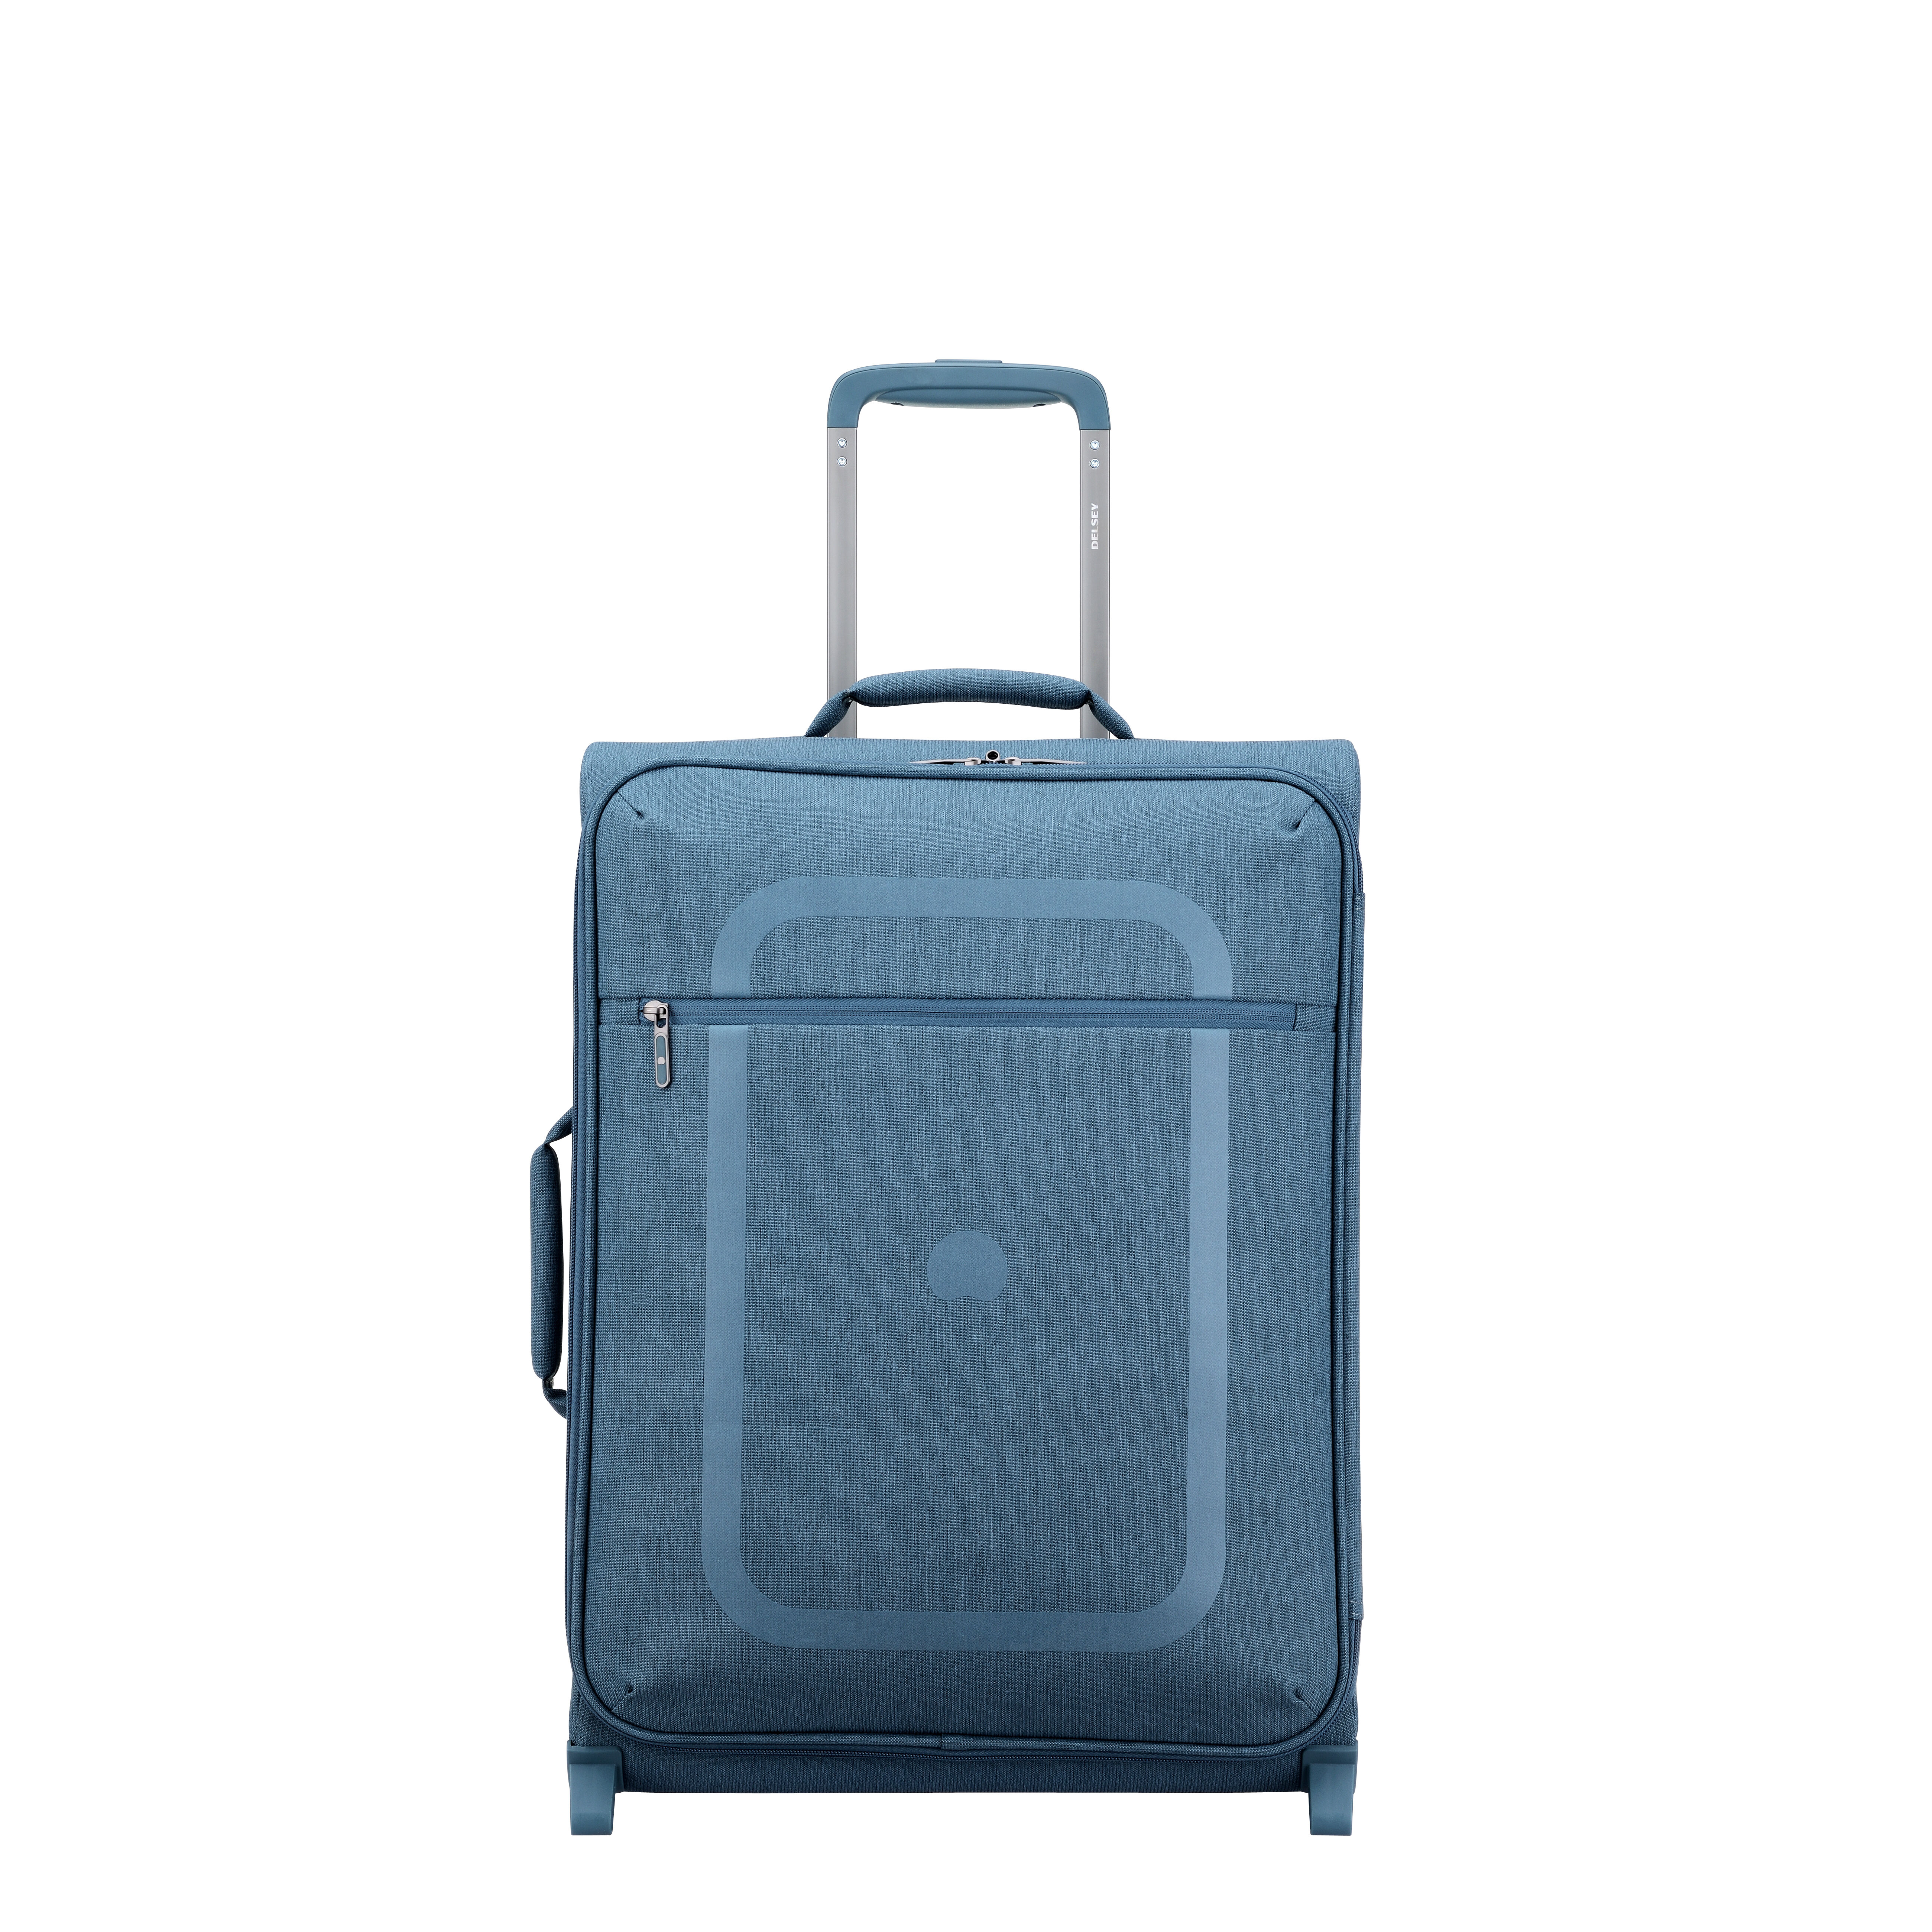 Delsey Valise voyage Extendo 3 64cm